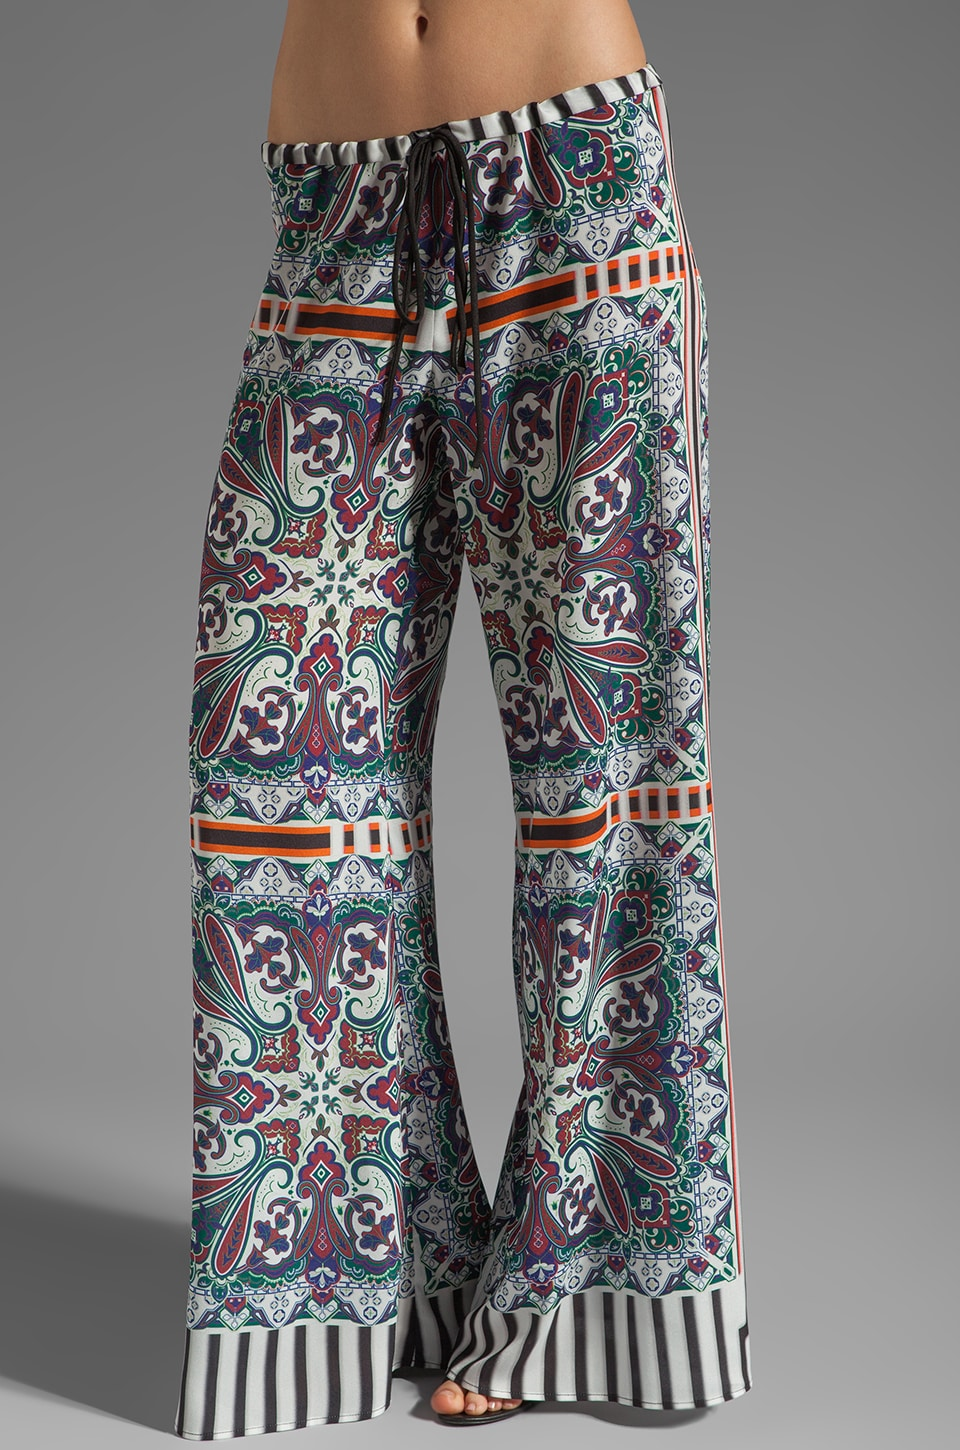 Clover Canyon Paisley Road Pant in Multi